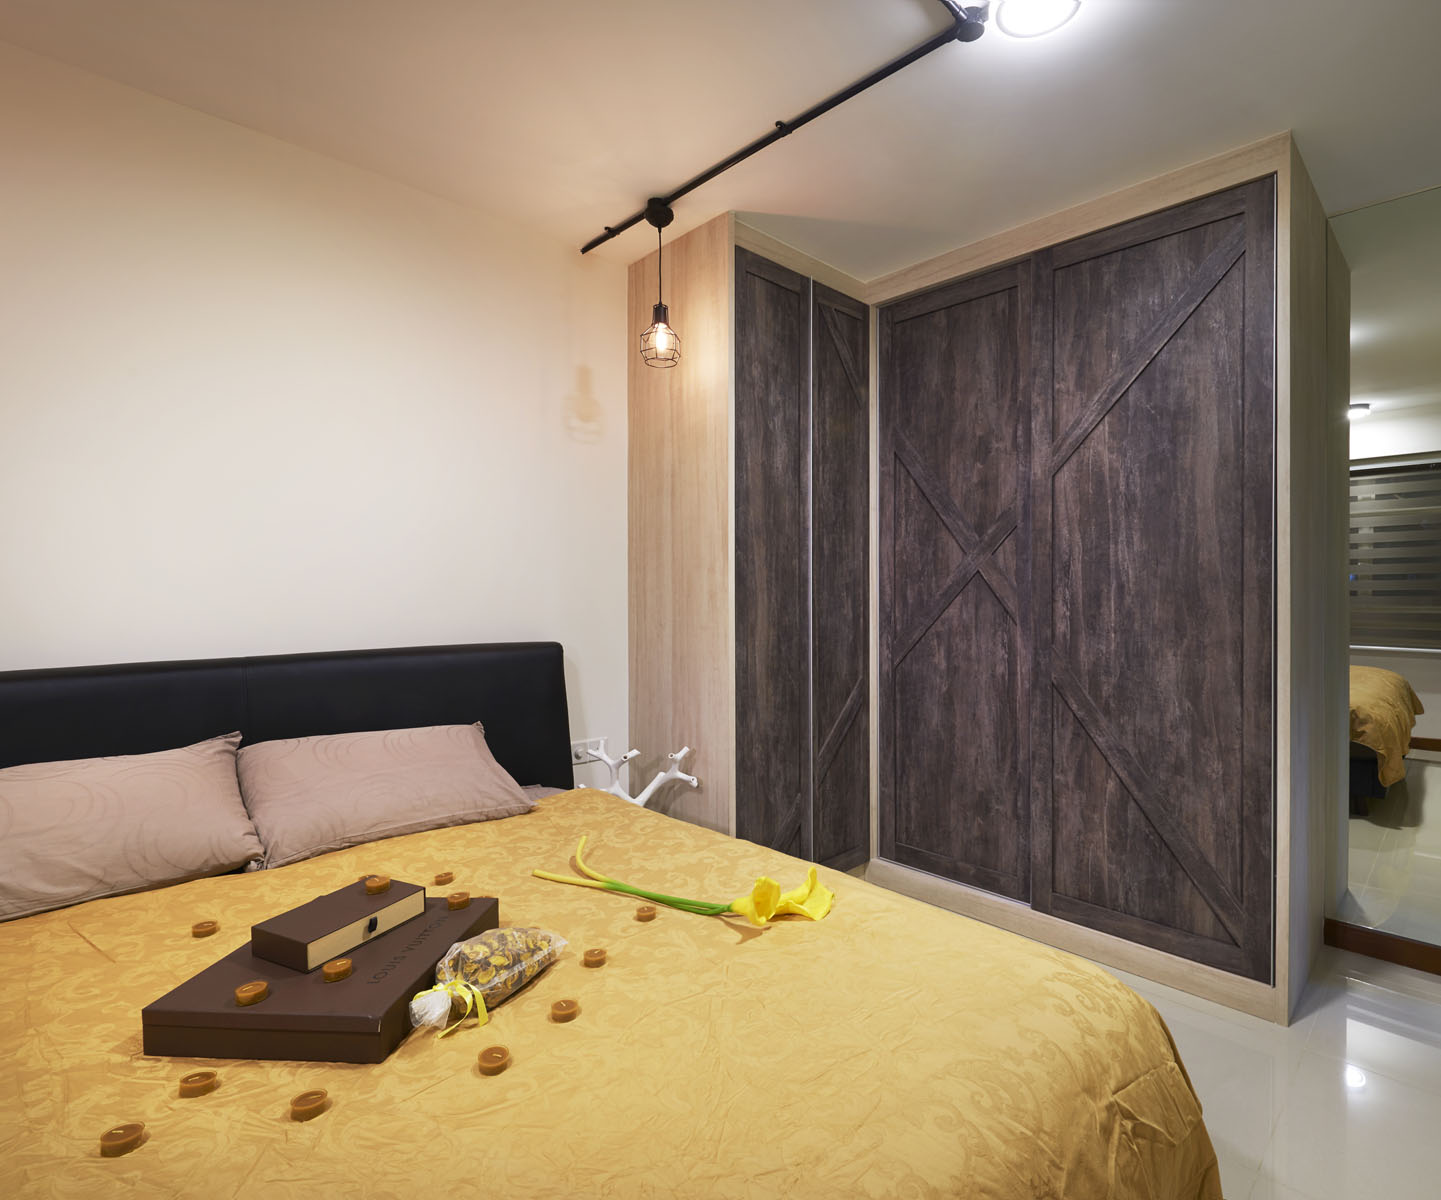 Bedroom Design Decor Renovation In Singapore